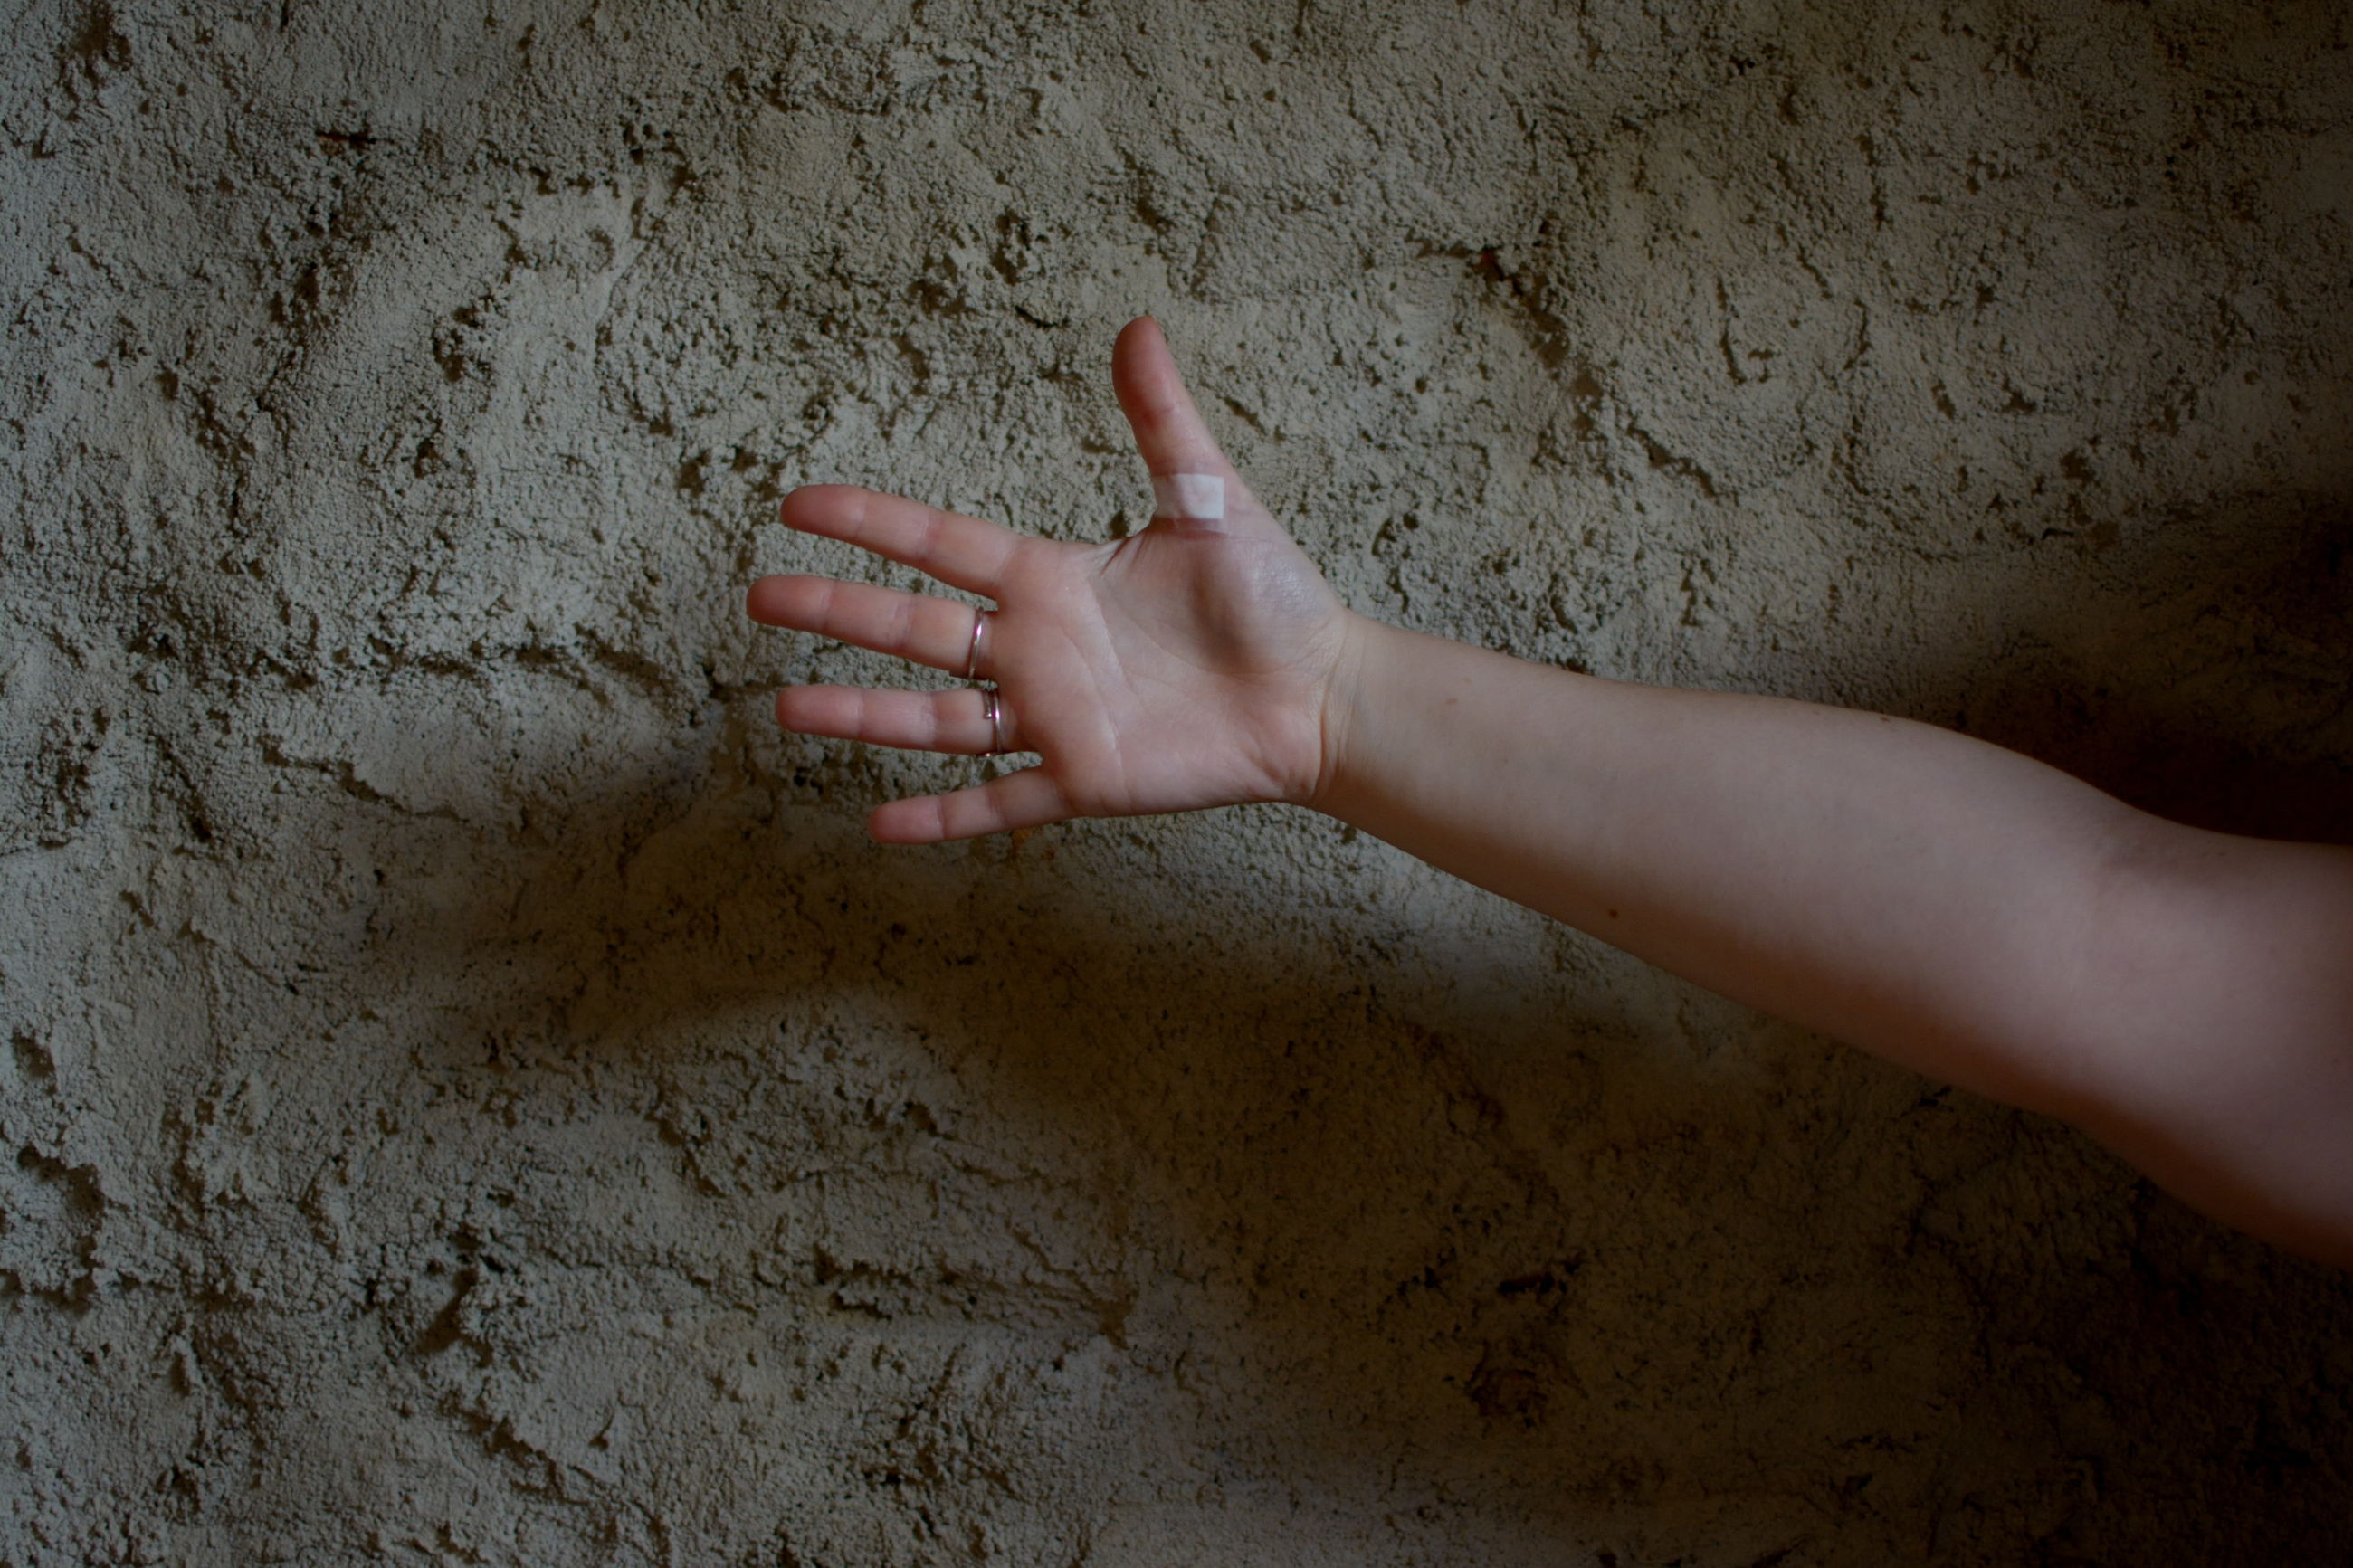 MIDSECTION OF PERSON TOUCHING WALL WITH HAND